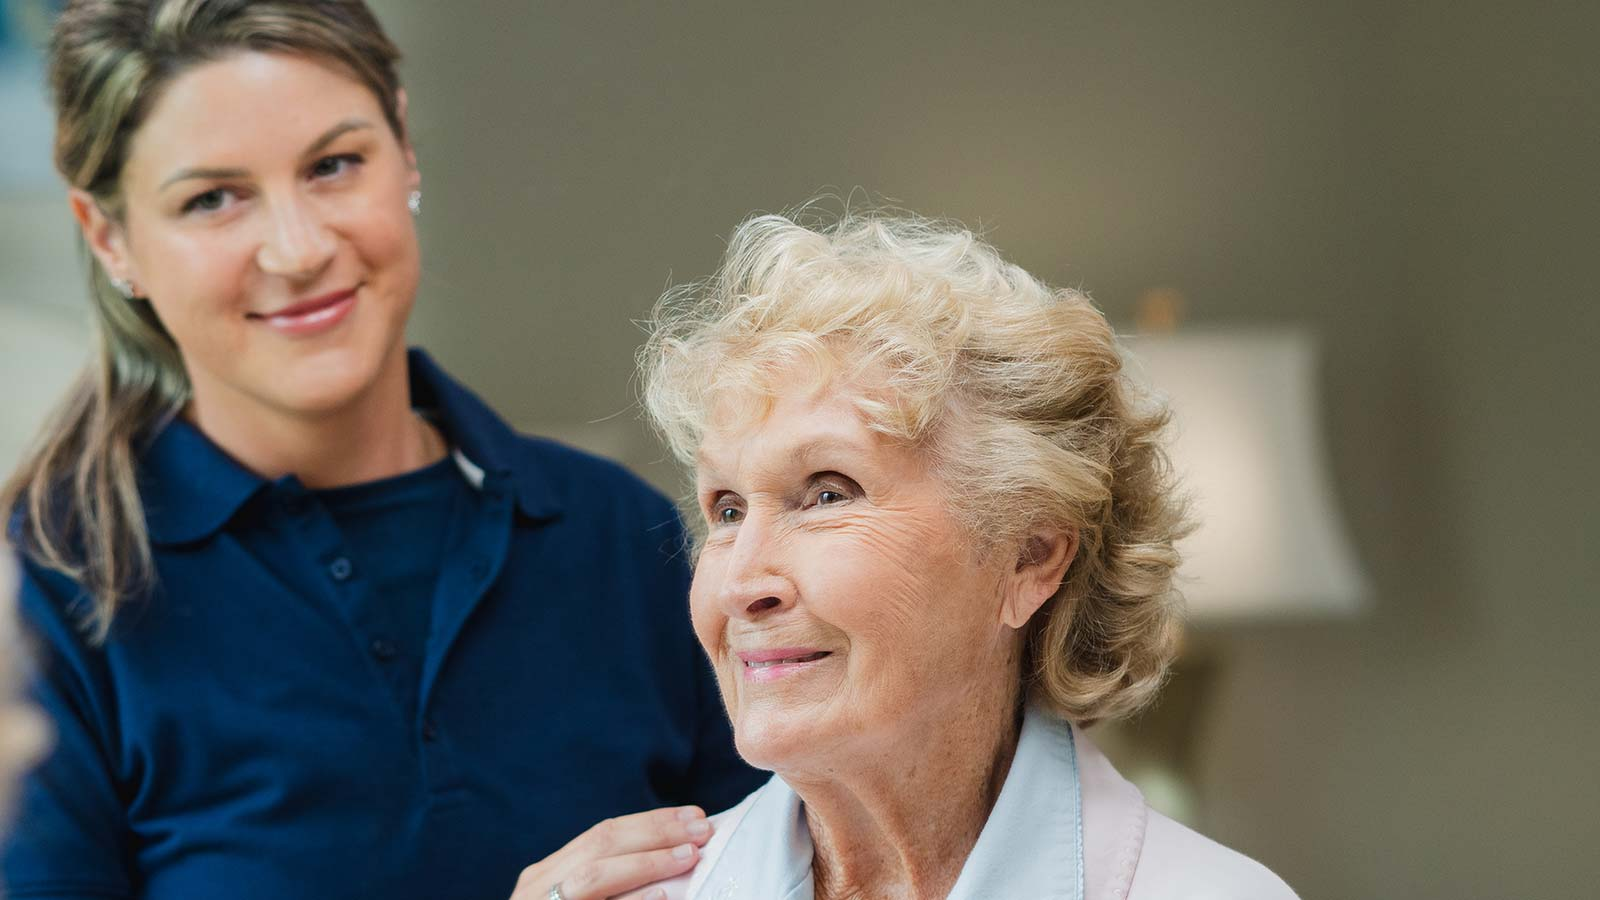 Senior woman seated with staff member standing by their side with hand on shoulder